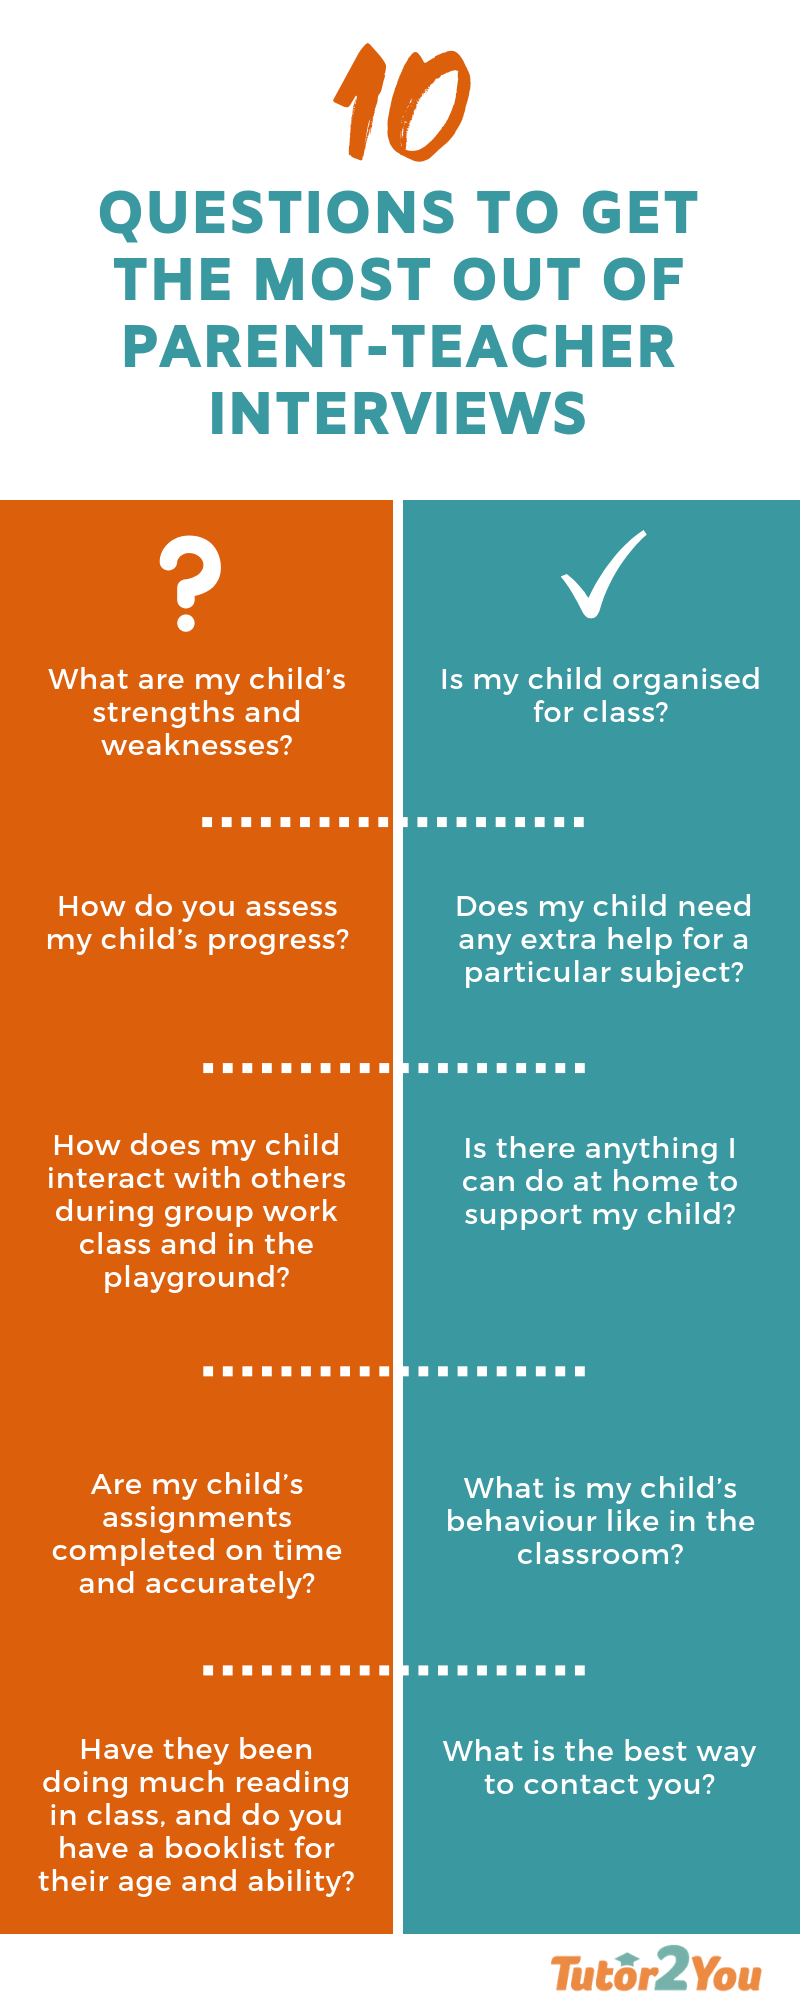 10 questions to get the most out of parent-teacher interview - infographic